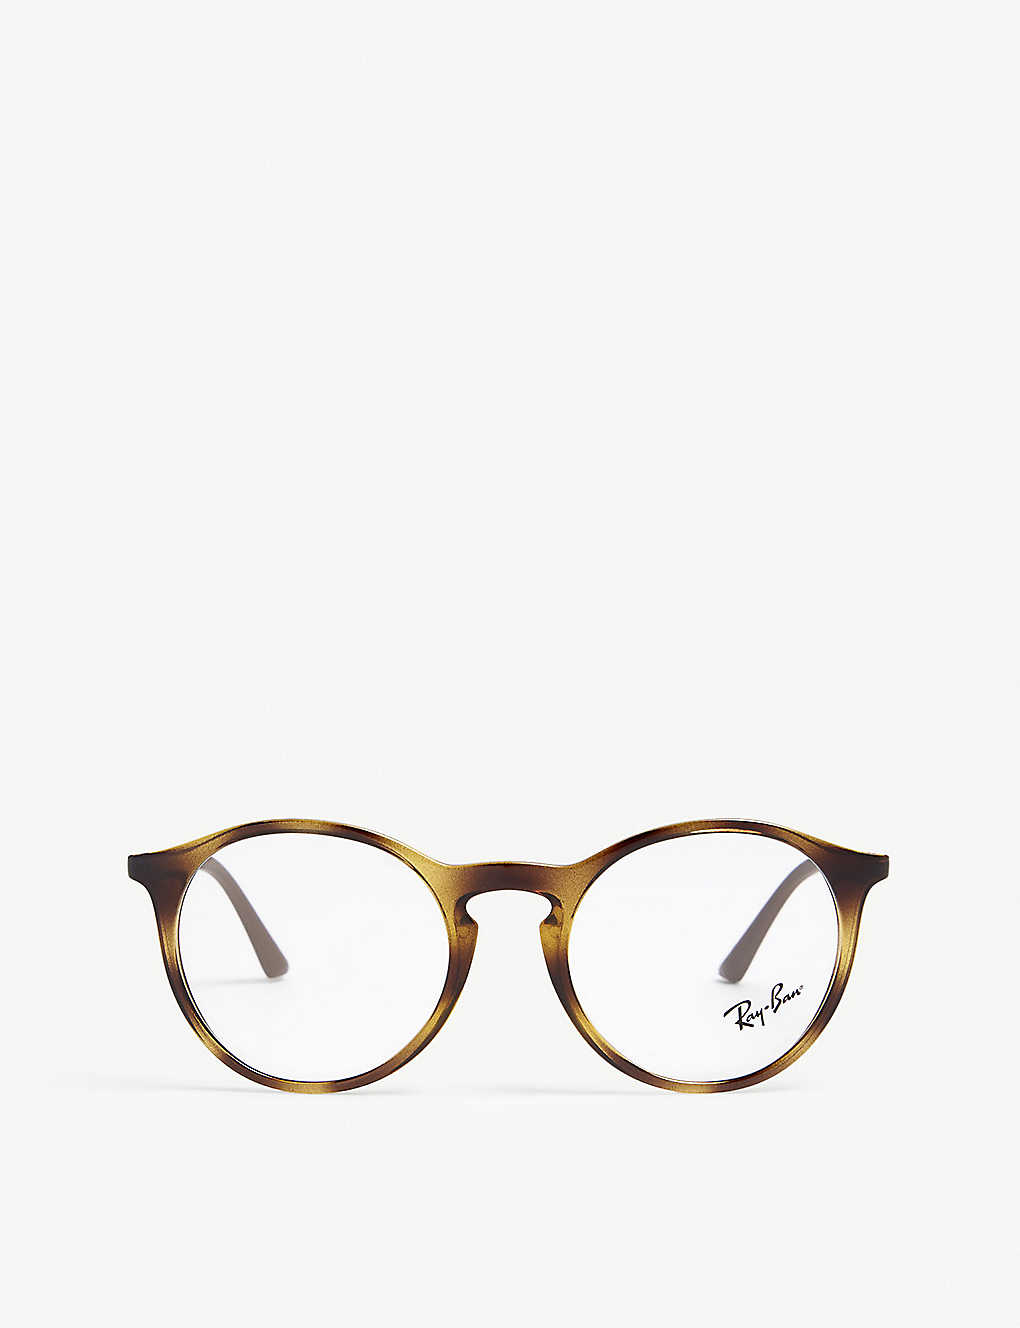 1b78b30b826 RAY-BAN - Rb7132 phantos-frame glasses